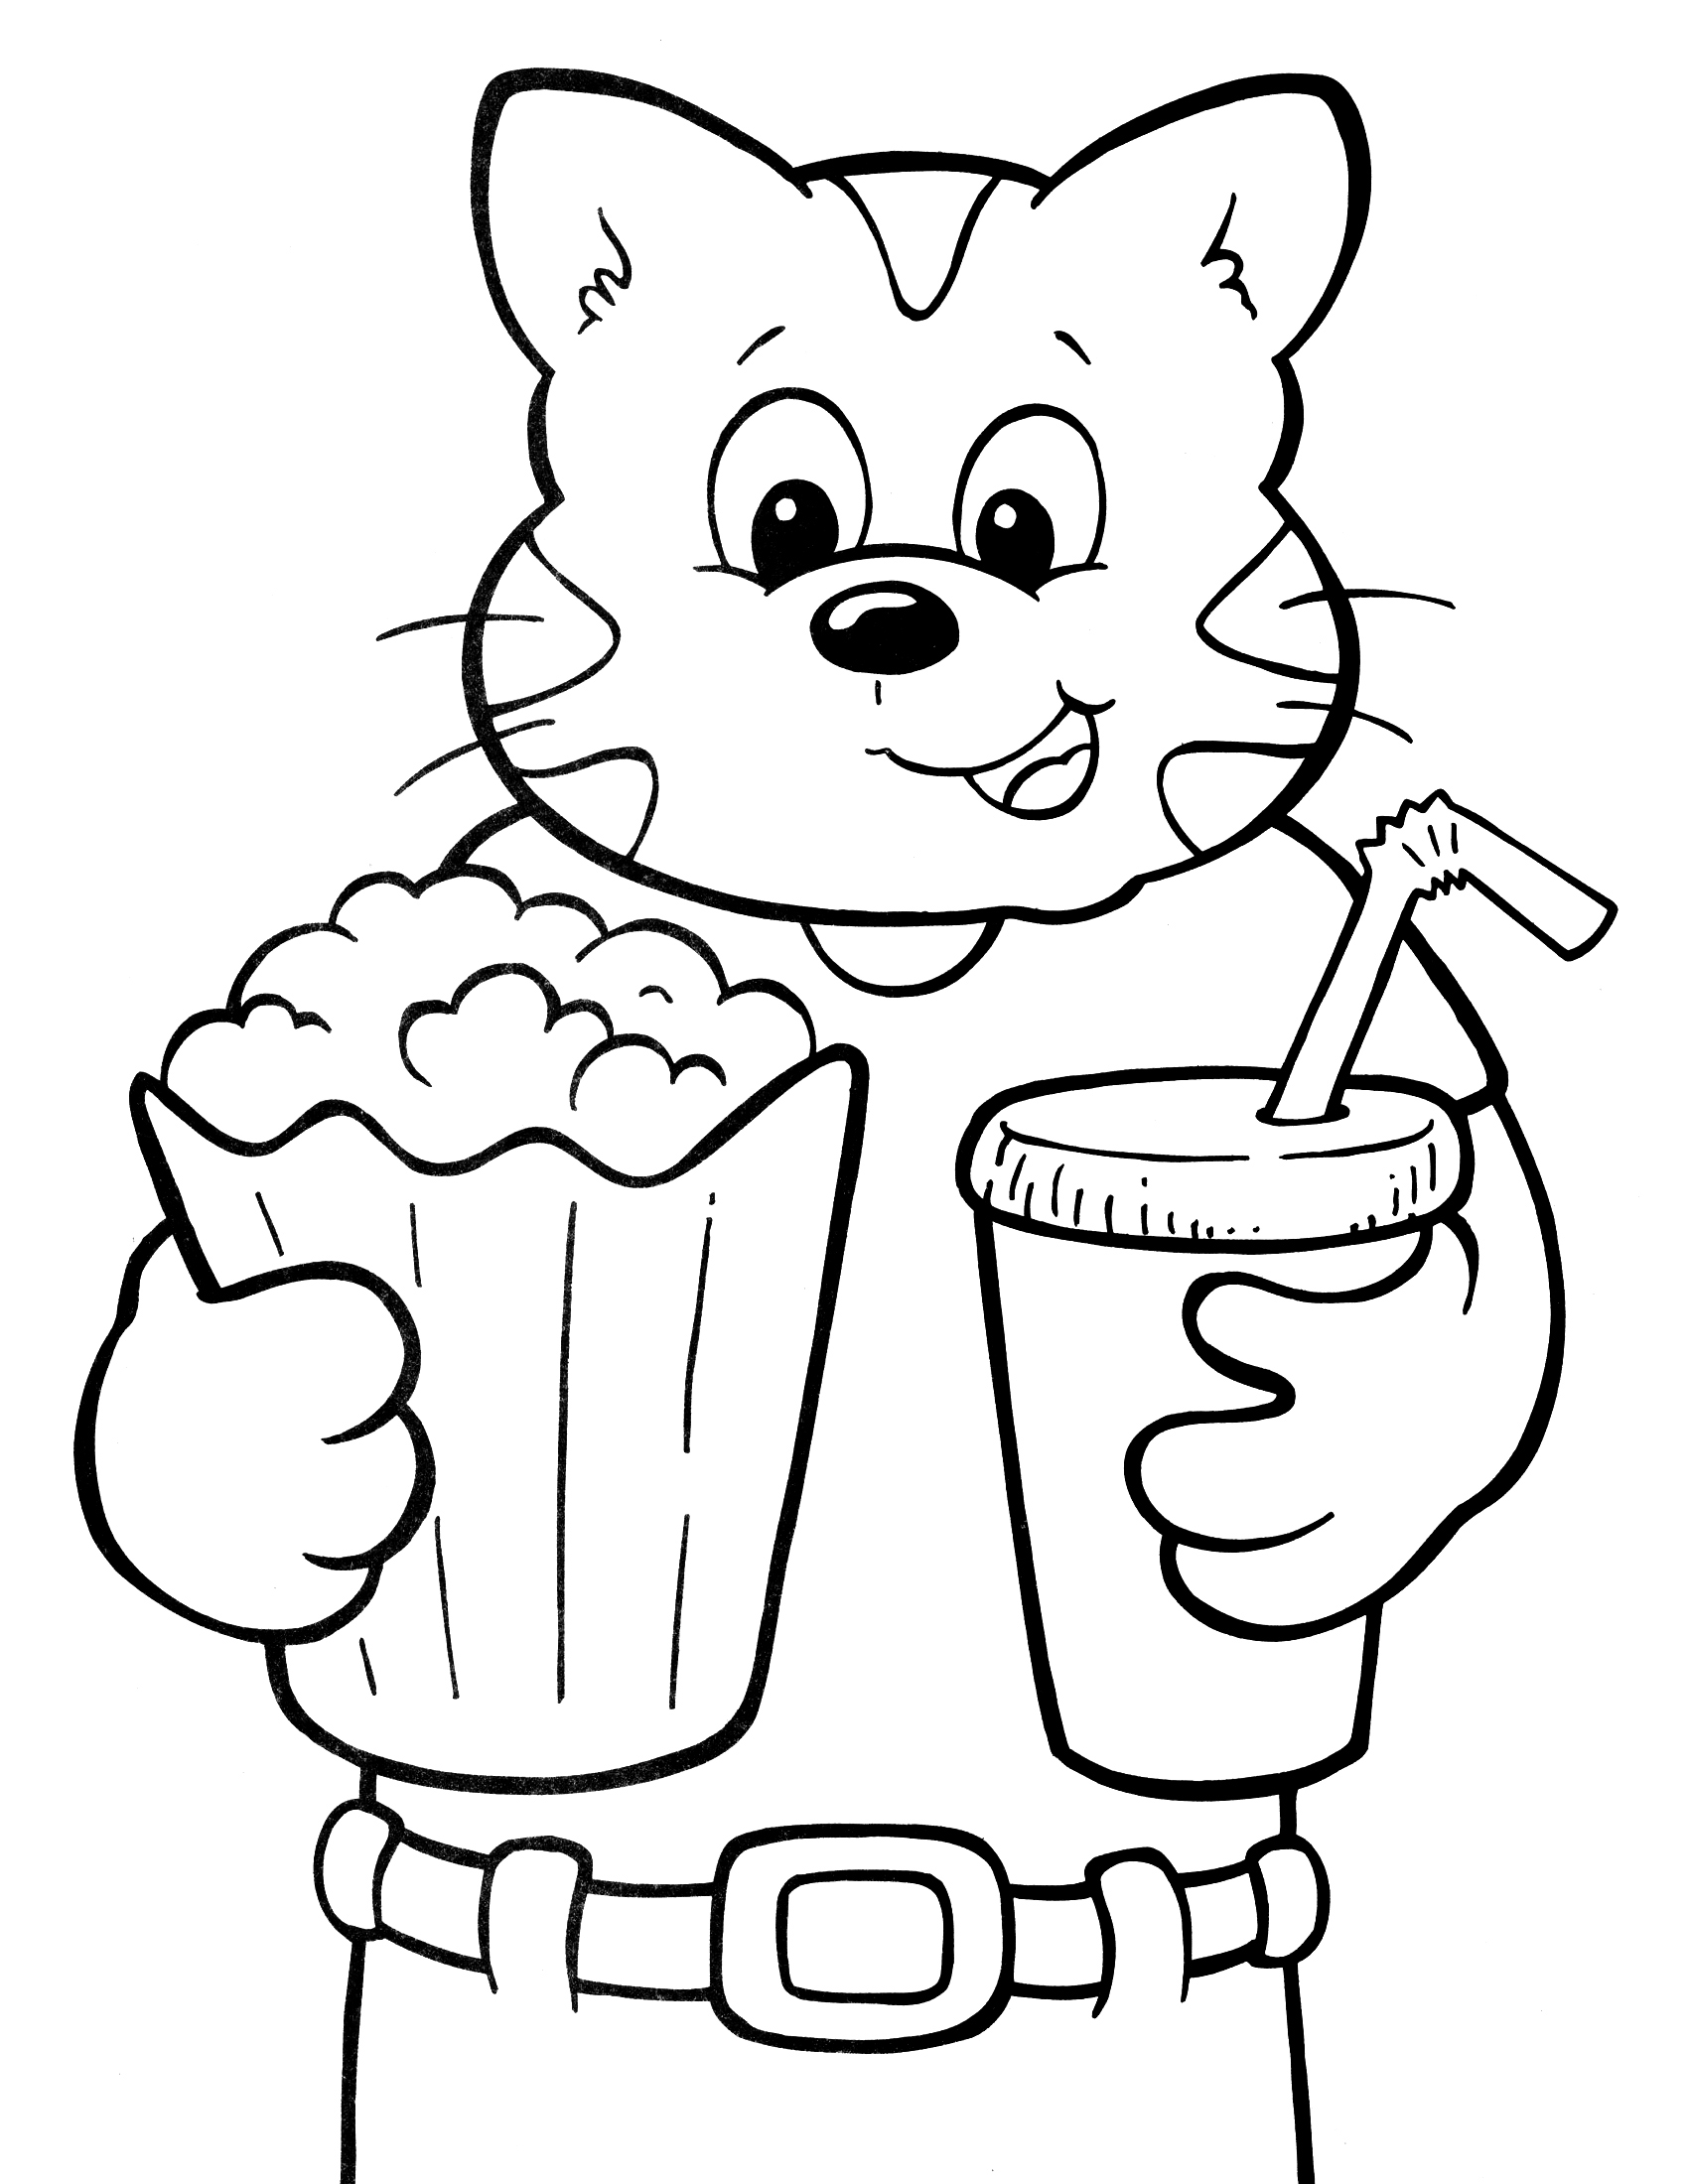 crayola coloring pages Only Coloring